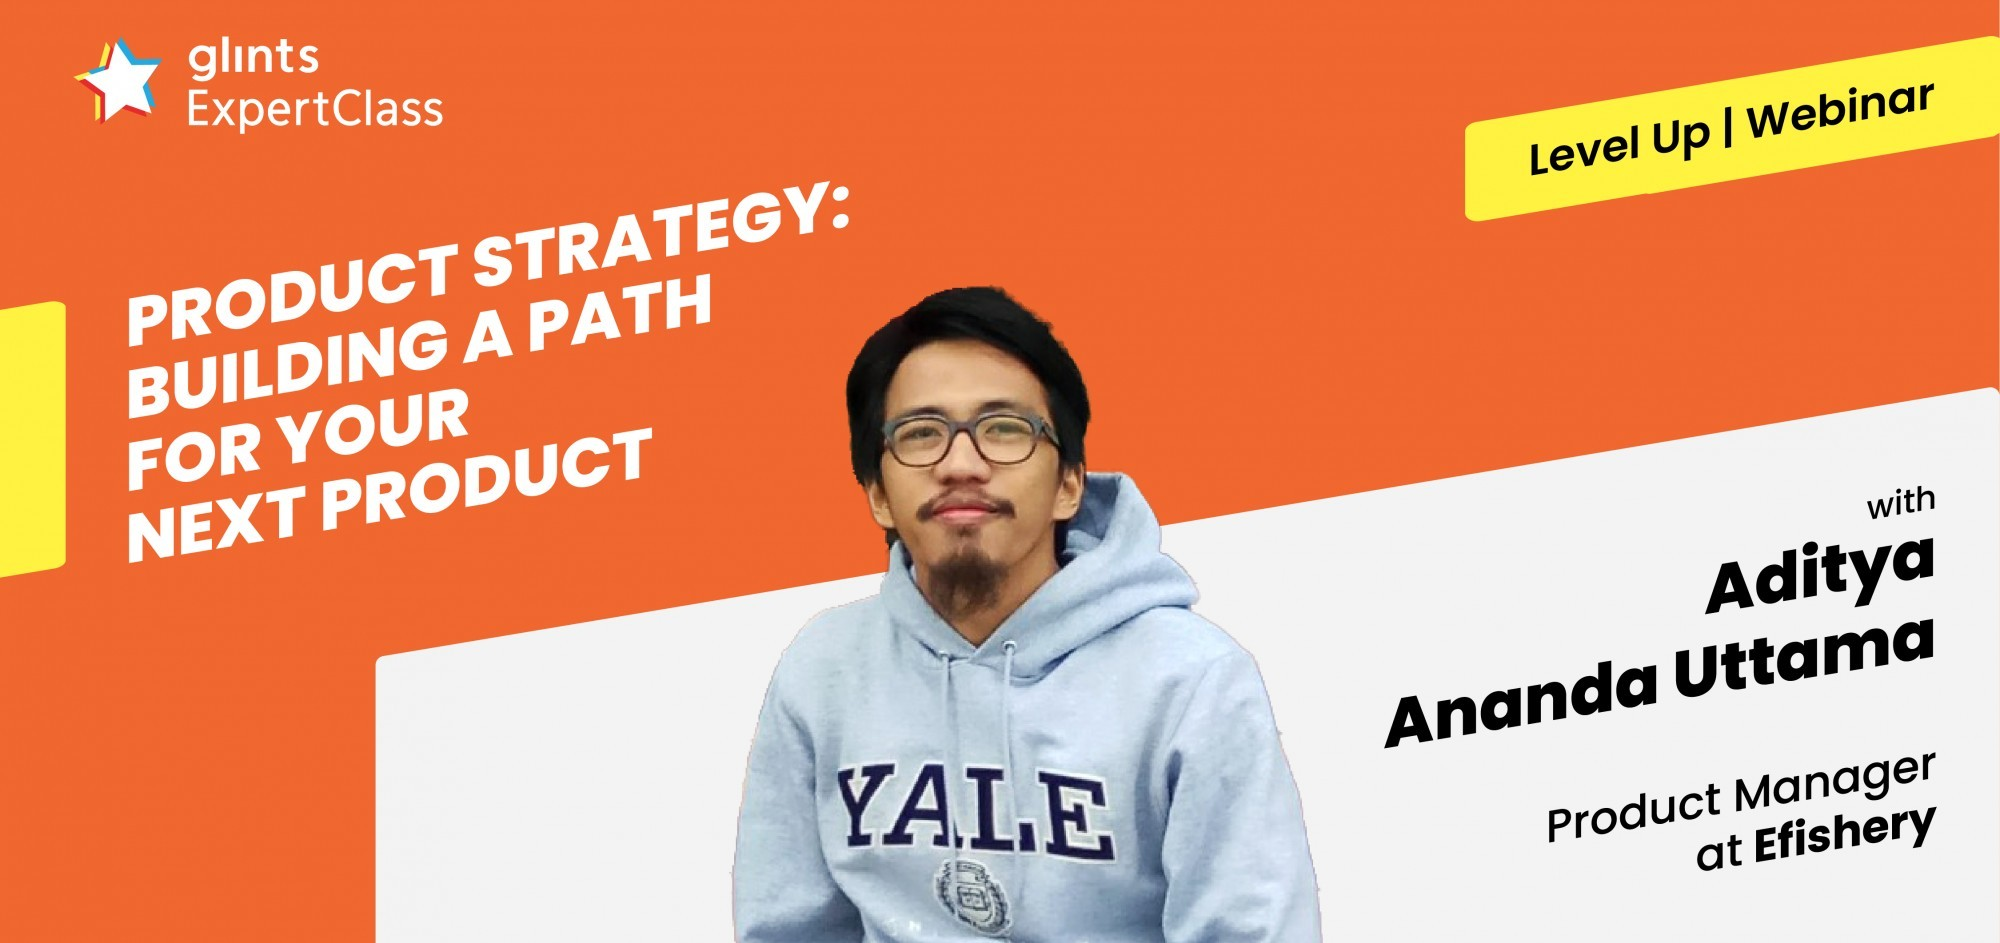 [Online Glints ExpertClass] Product Strategy : Building a Path for Your Next Product